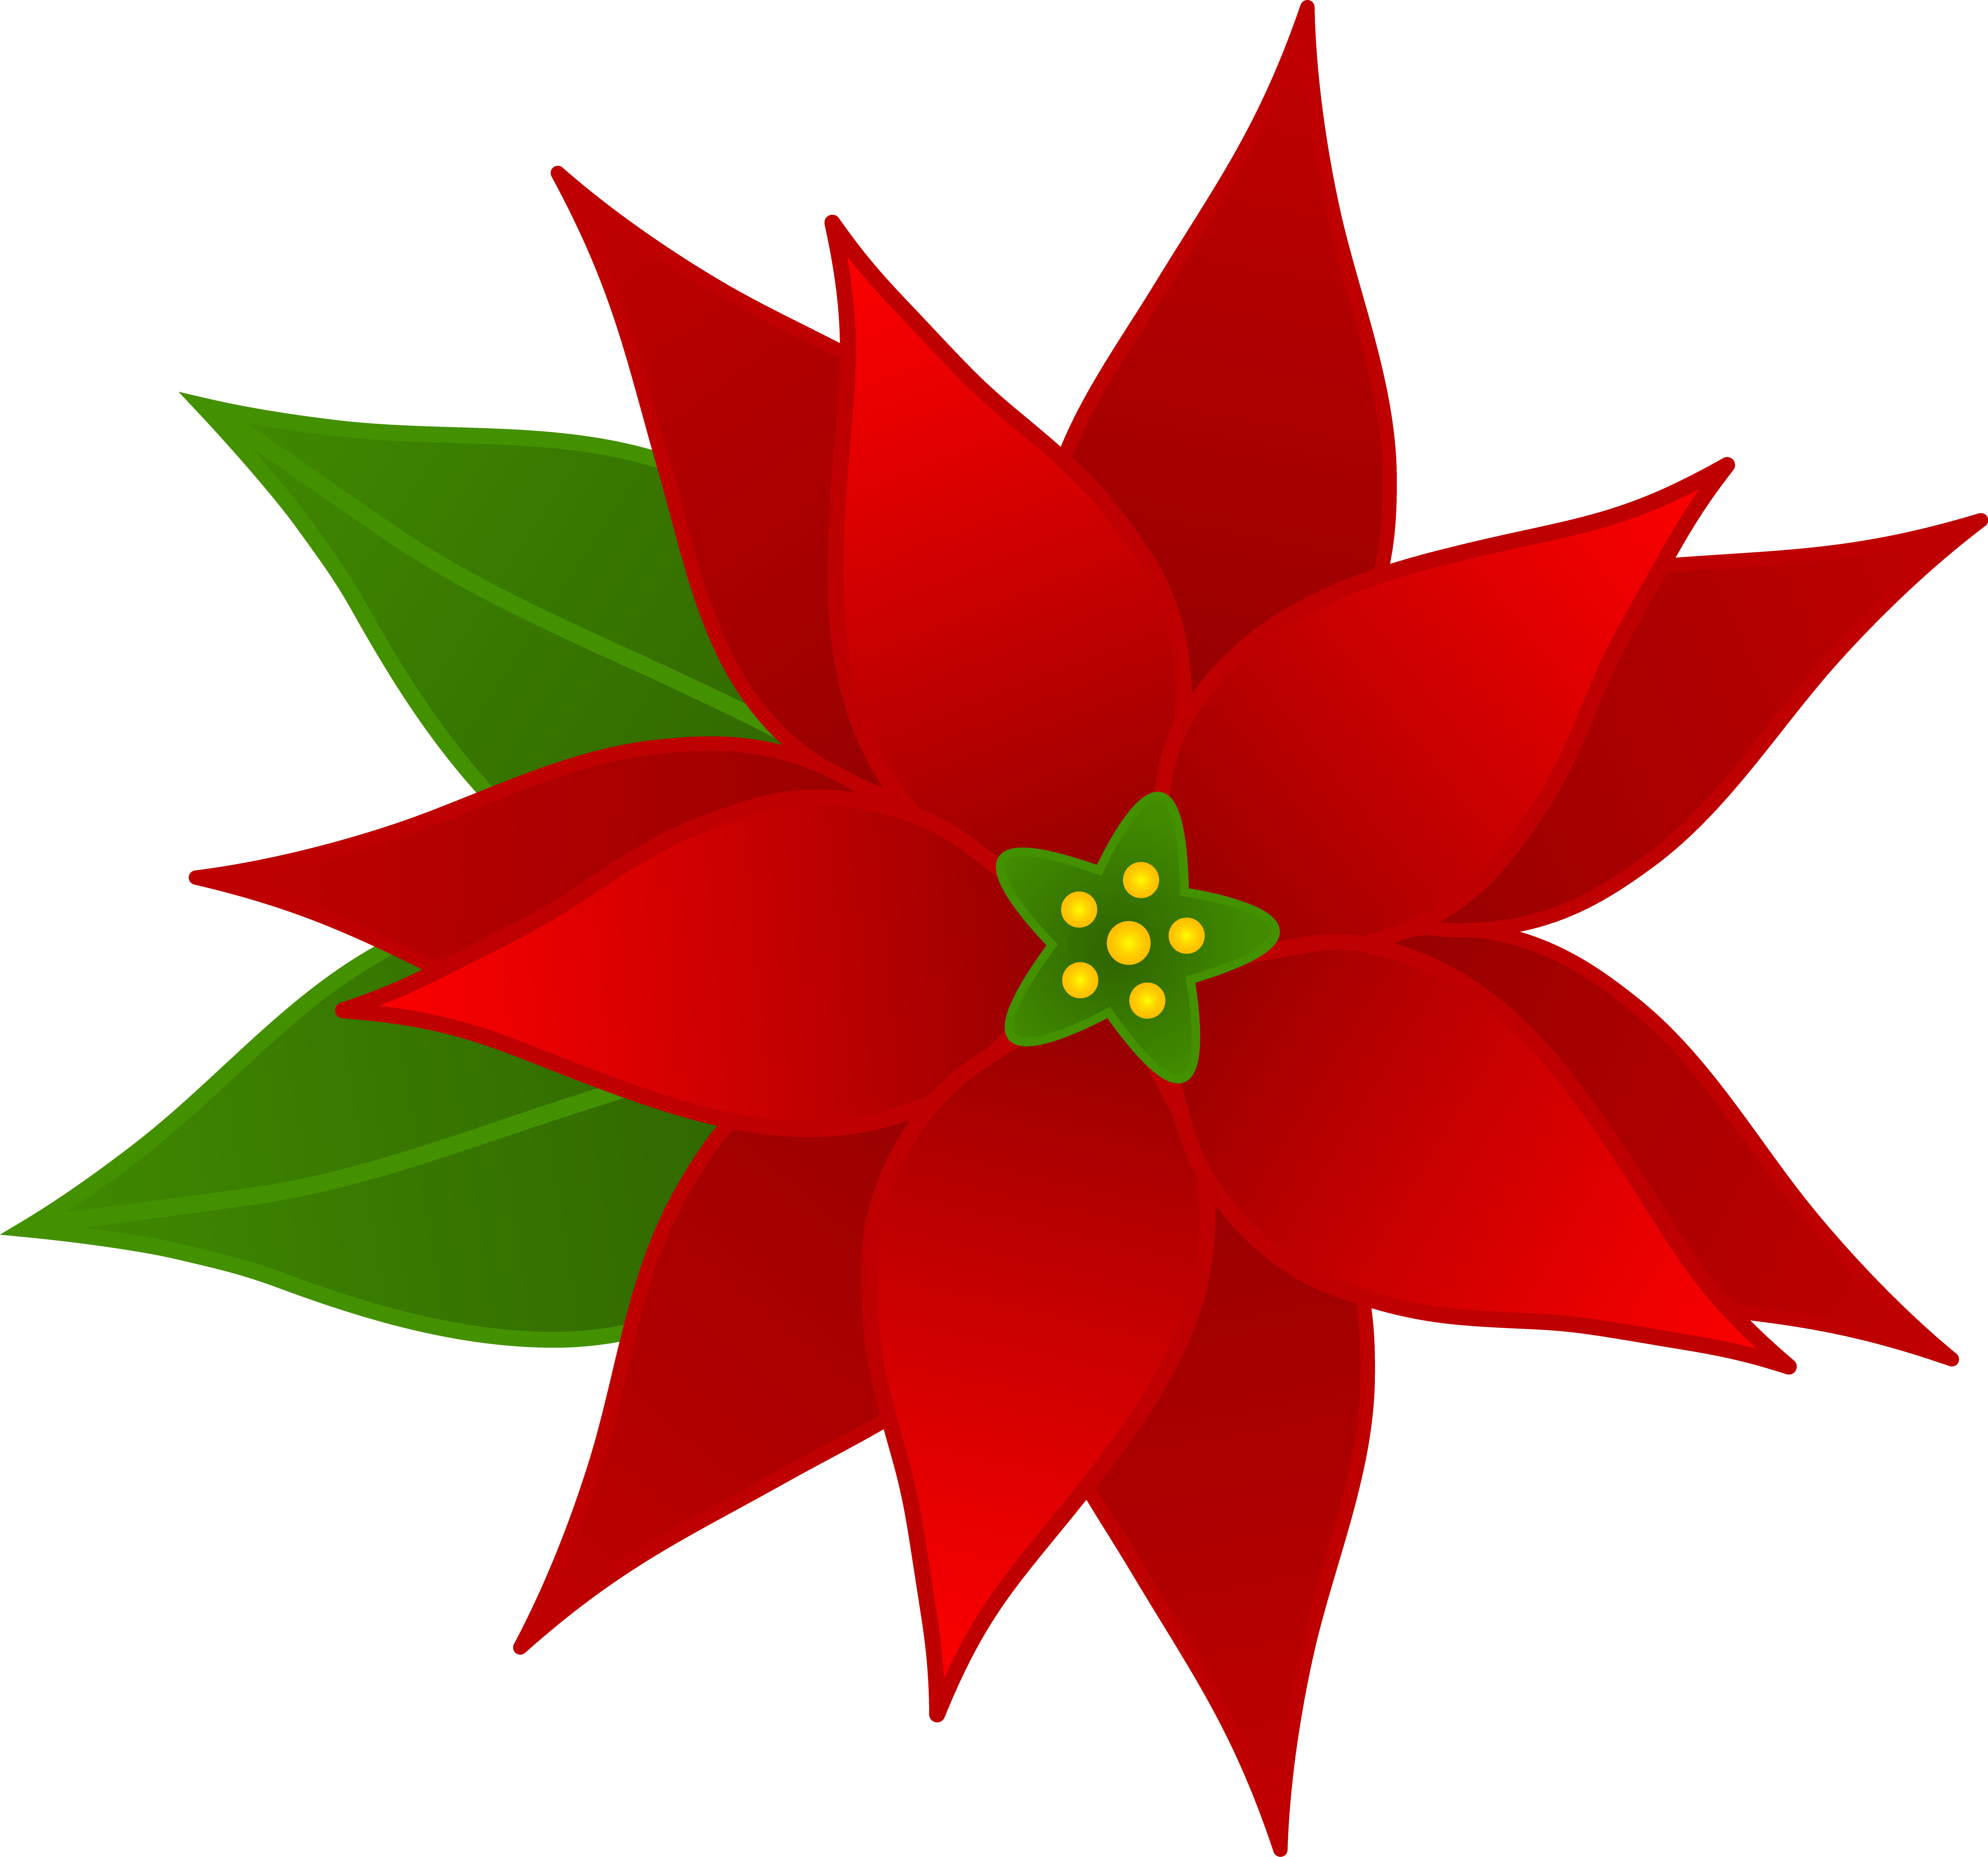 christmas clipart free play money clipart panda free free clipart poinsettia flowers free poinsettia clip art images